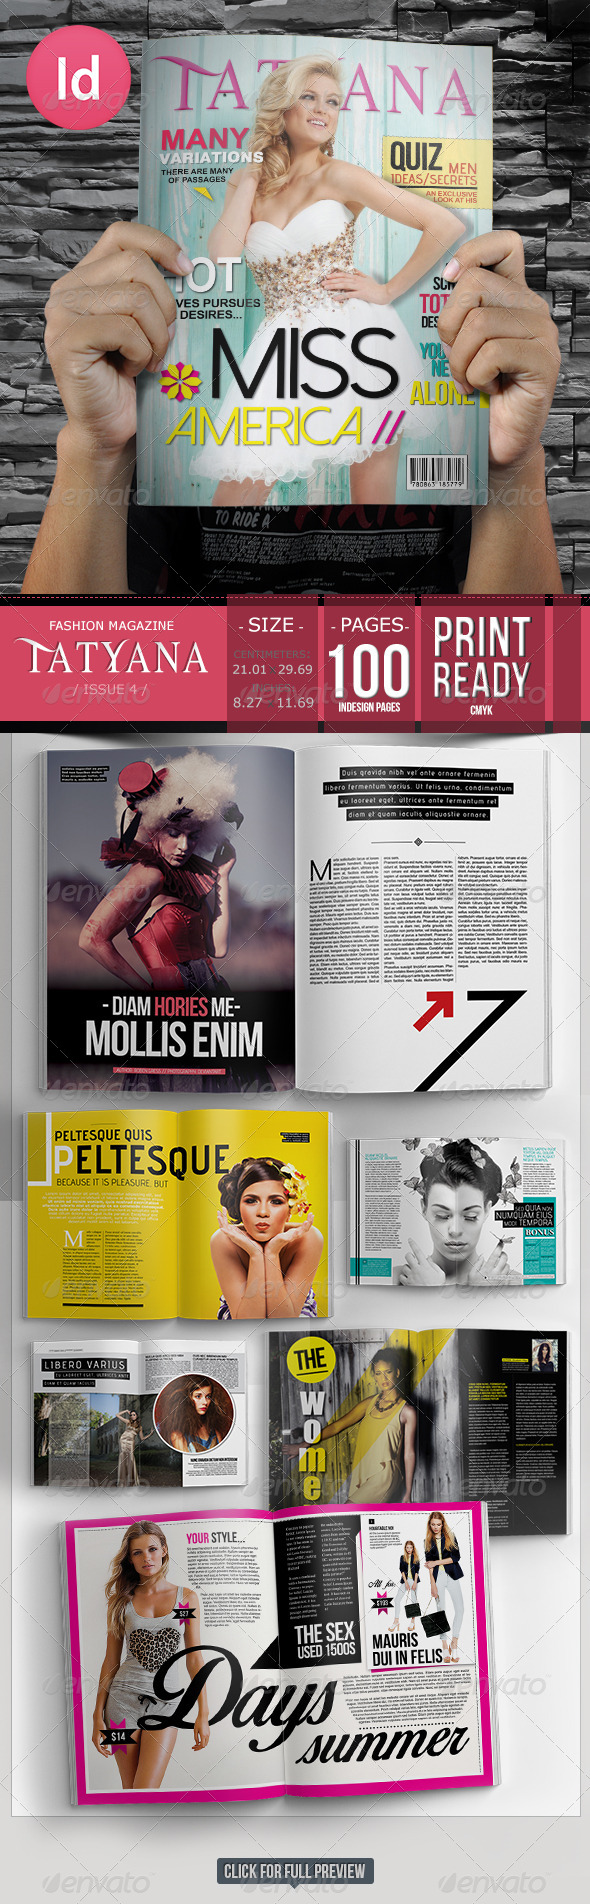 100 Pages Fashion Magazine Issue 4 - Magazines Print Templates